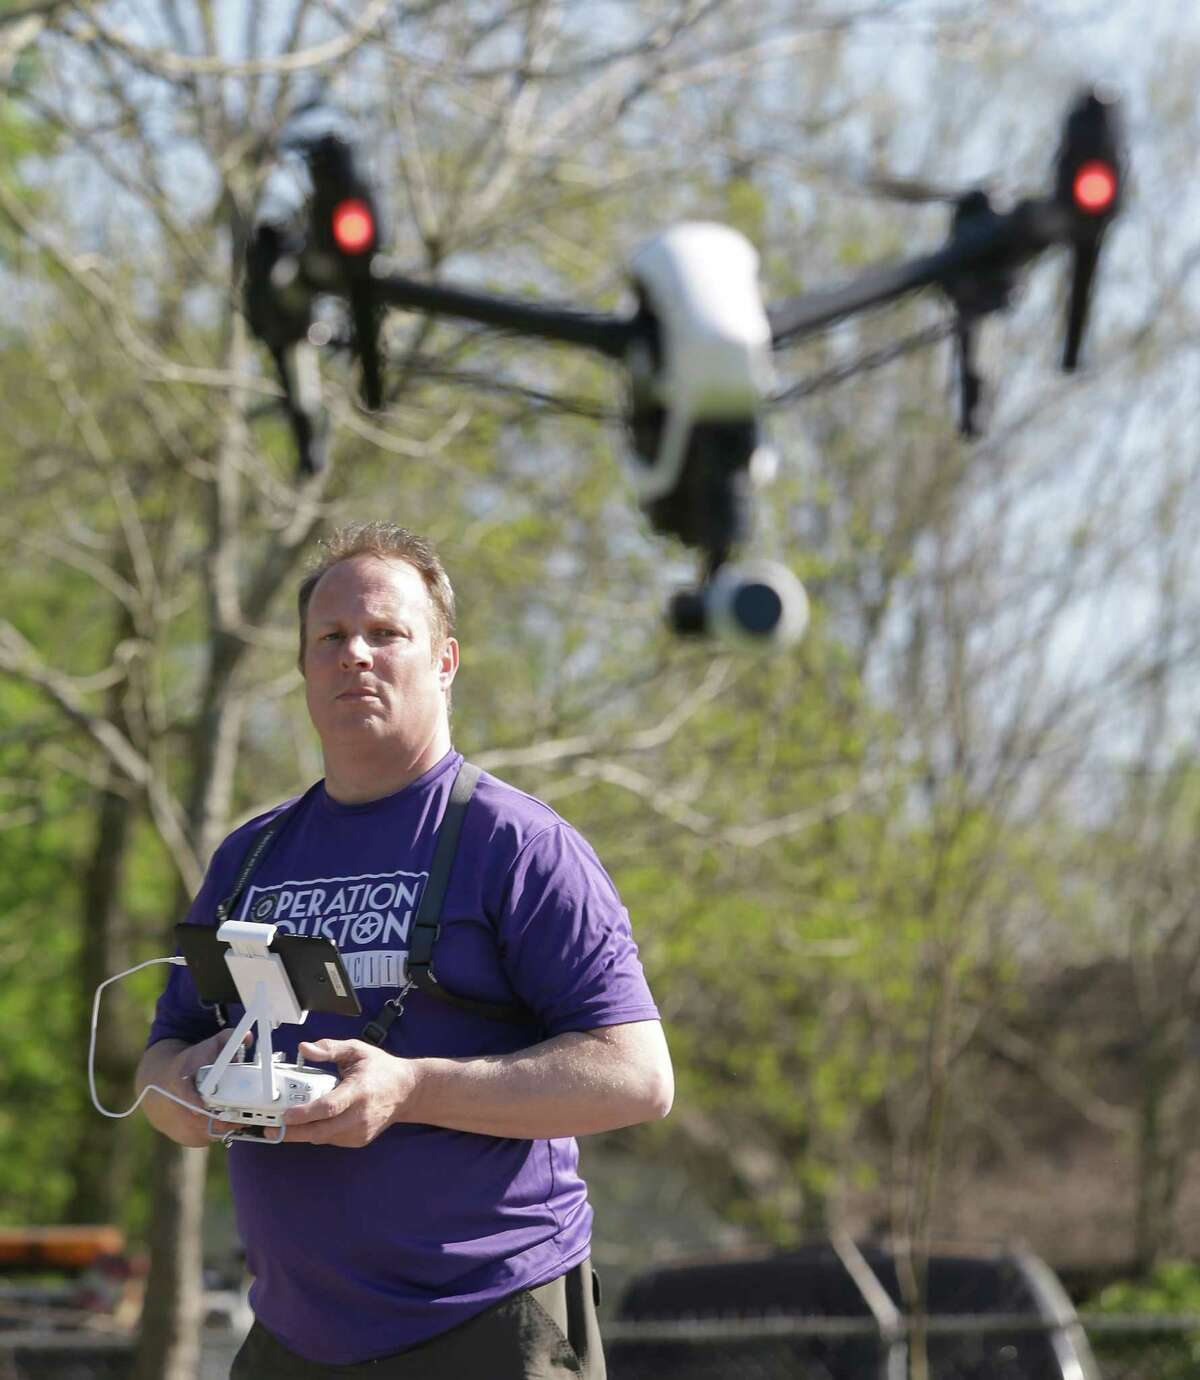 Tom McPhee with World Animal Awareness controls a camera-equipped drone to document stray dogs in the Sunnyside area